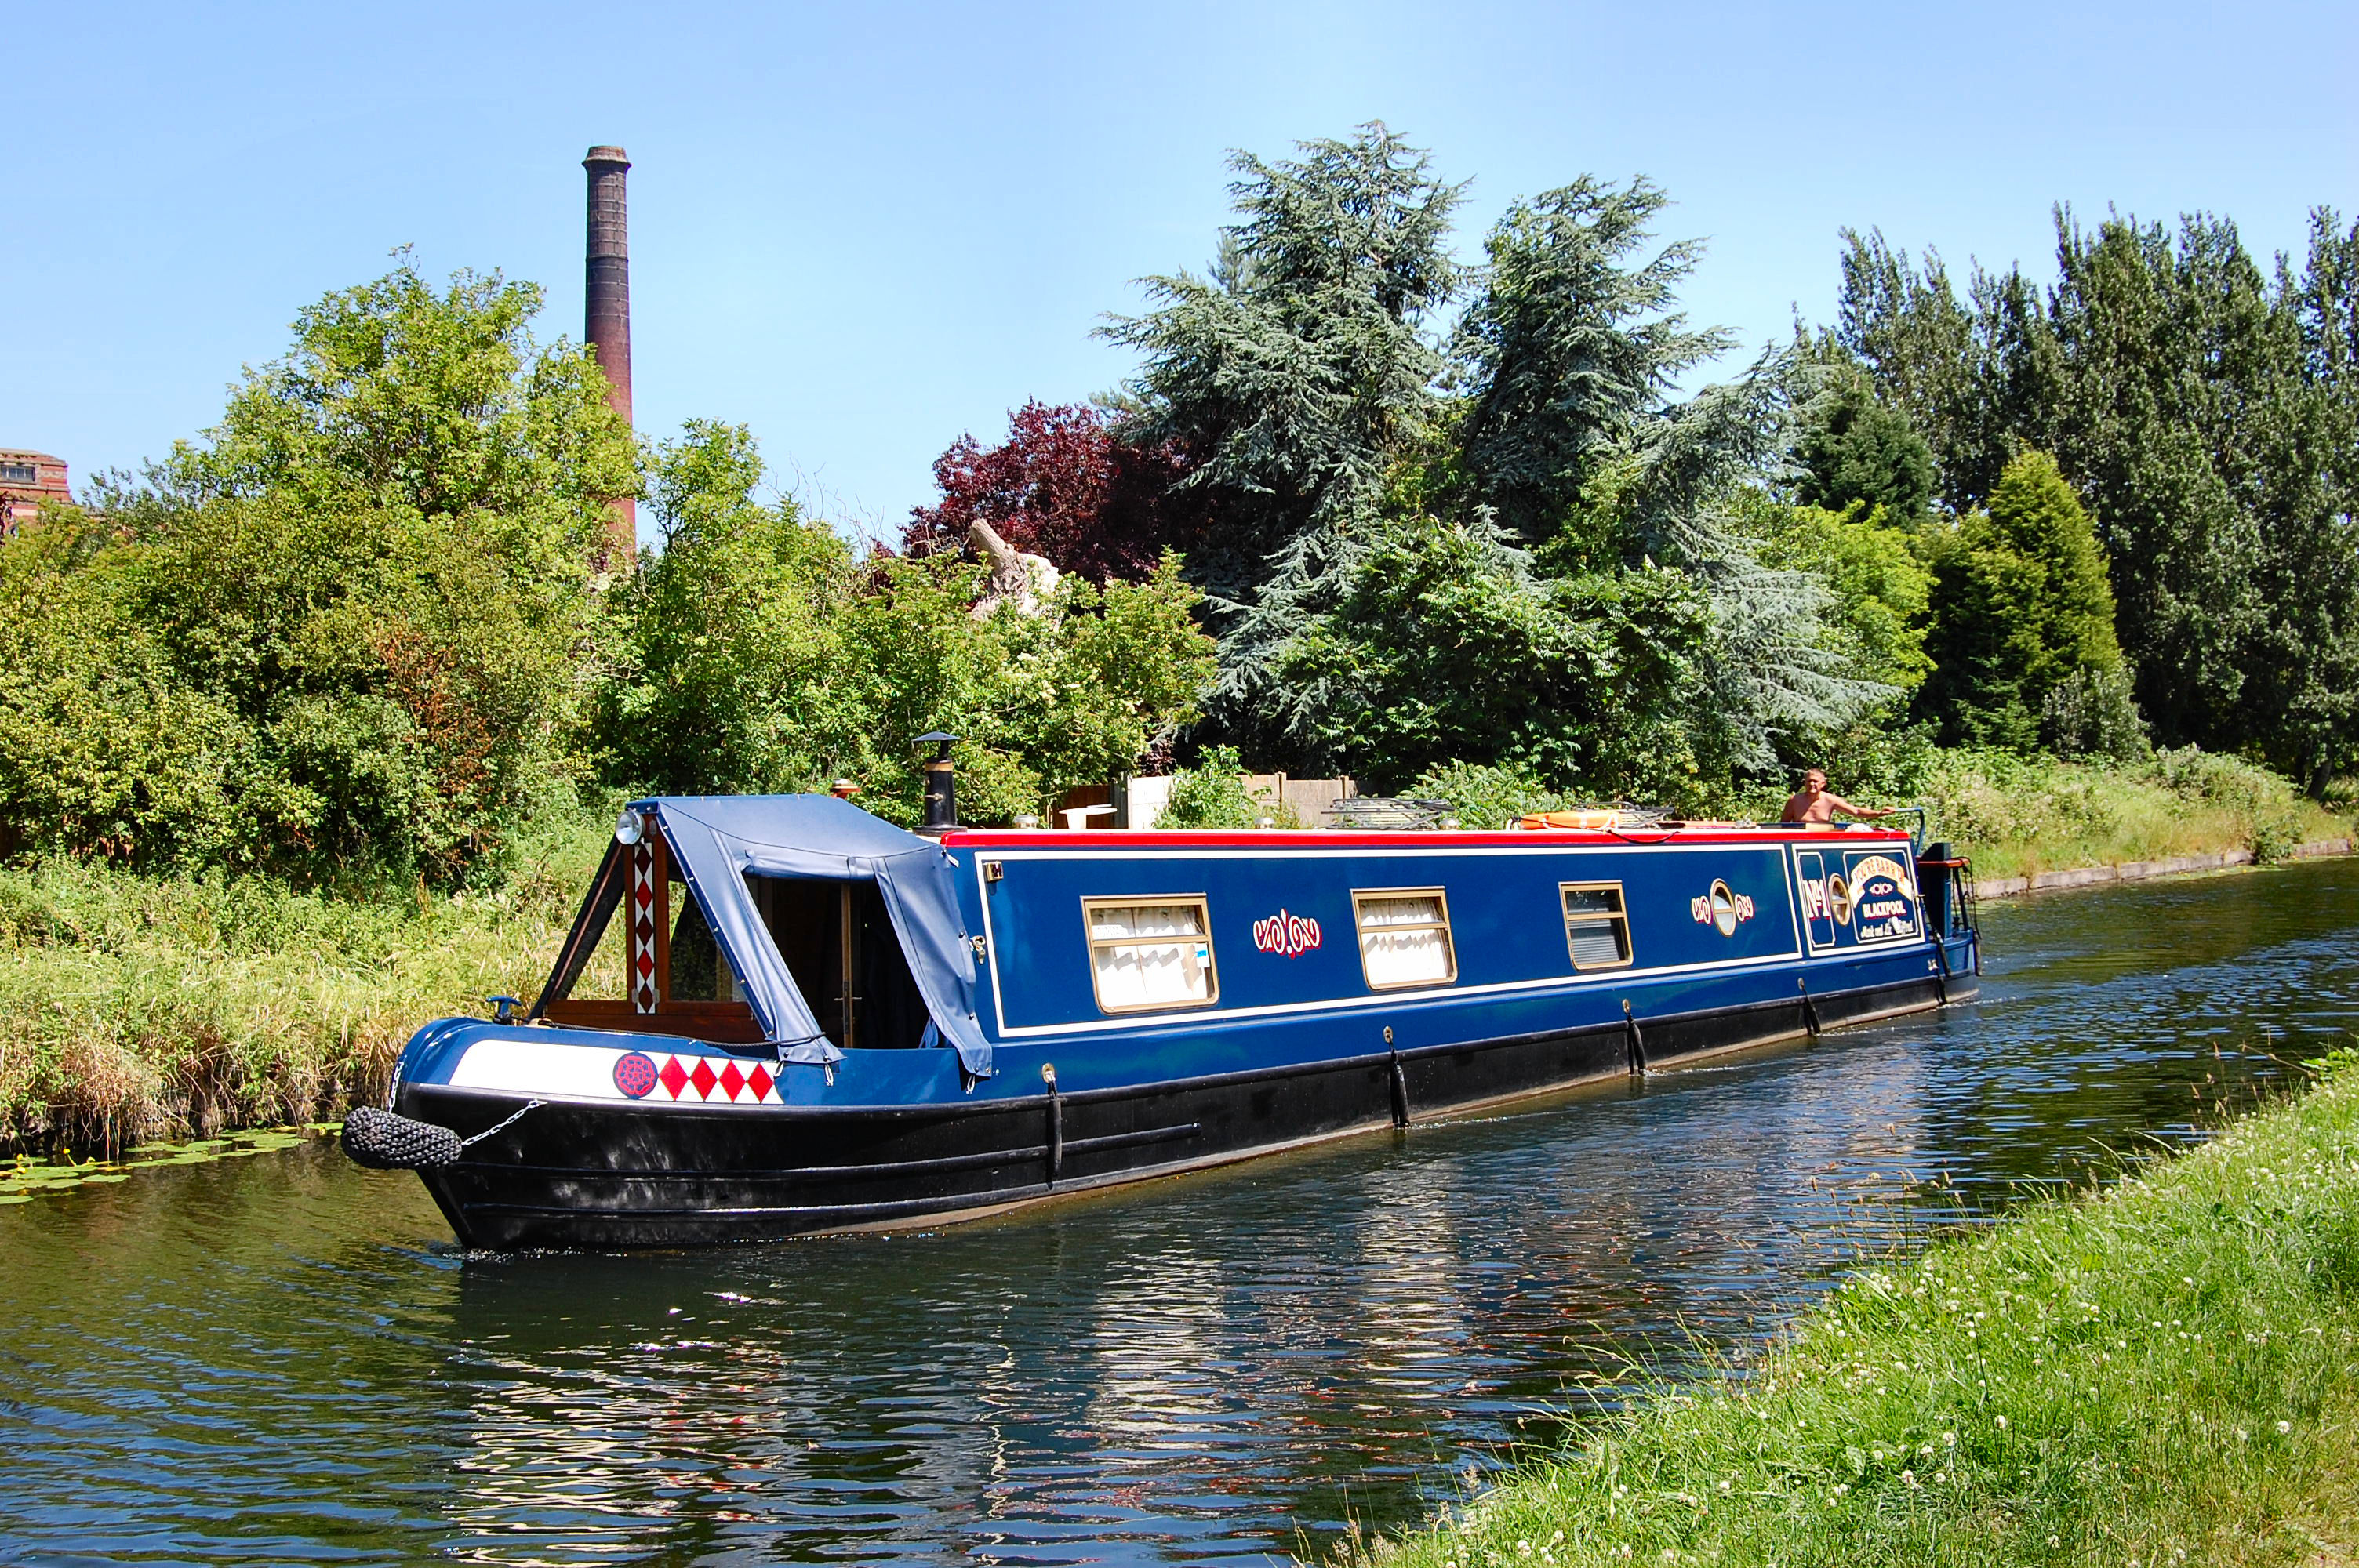 Narrow Foyer Yacht : Seven quirky ways to travel the uk without breaking bank